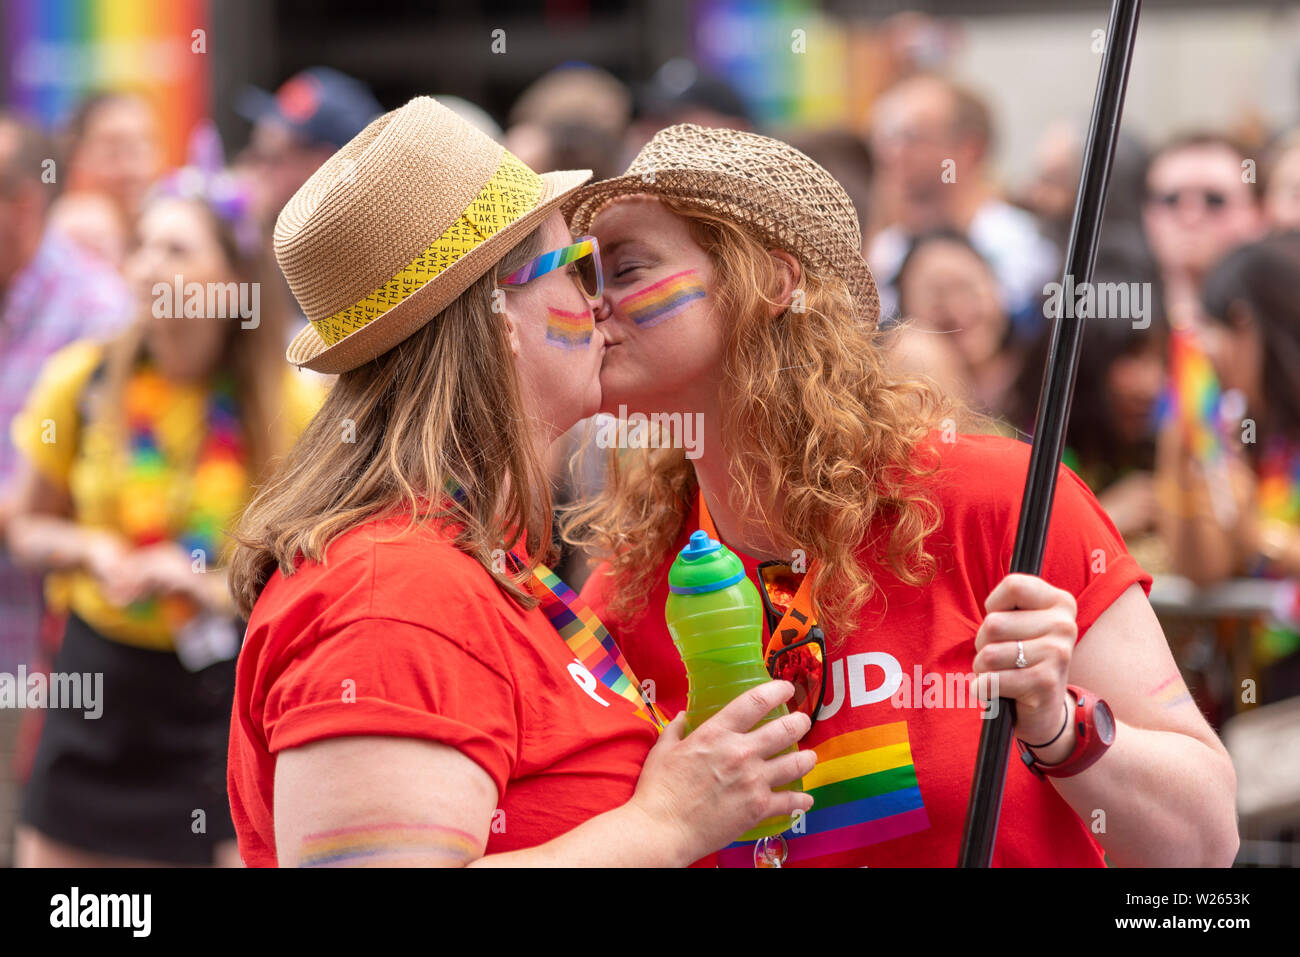 pride-in-london-aims-to-promote-all-aspects-of-the-lgbt-community-in-a-colourful-parade-from-portland-place-to-whitehall-2019-marks-the-50th-anniversary-of-the-modern-gay-rights-movement-and-is-expected-to-be-the-biggest-and-best-yet-females-kissing-W2653K.jpg